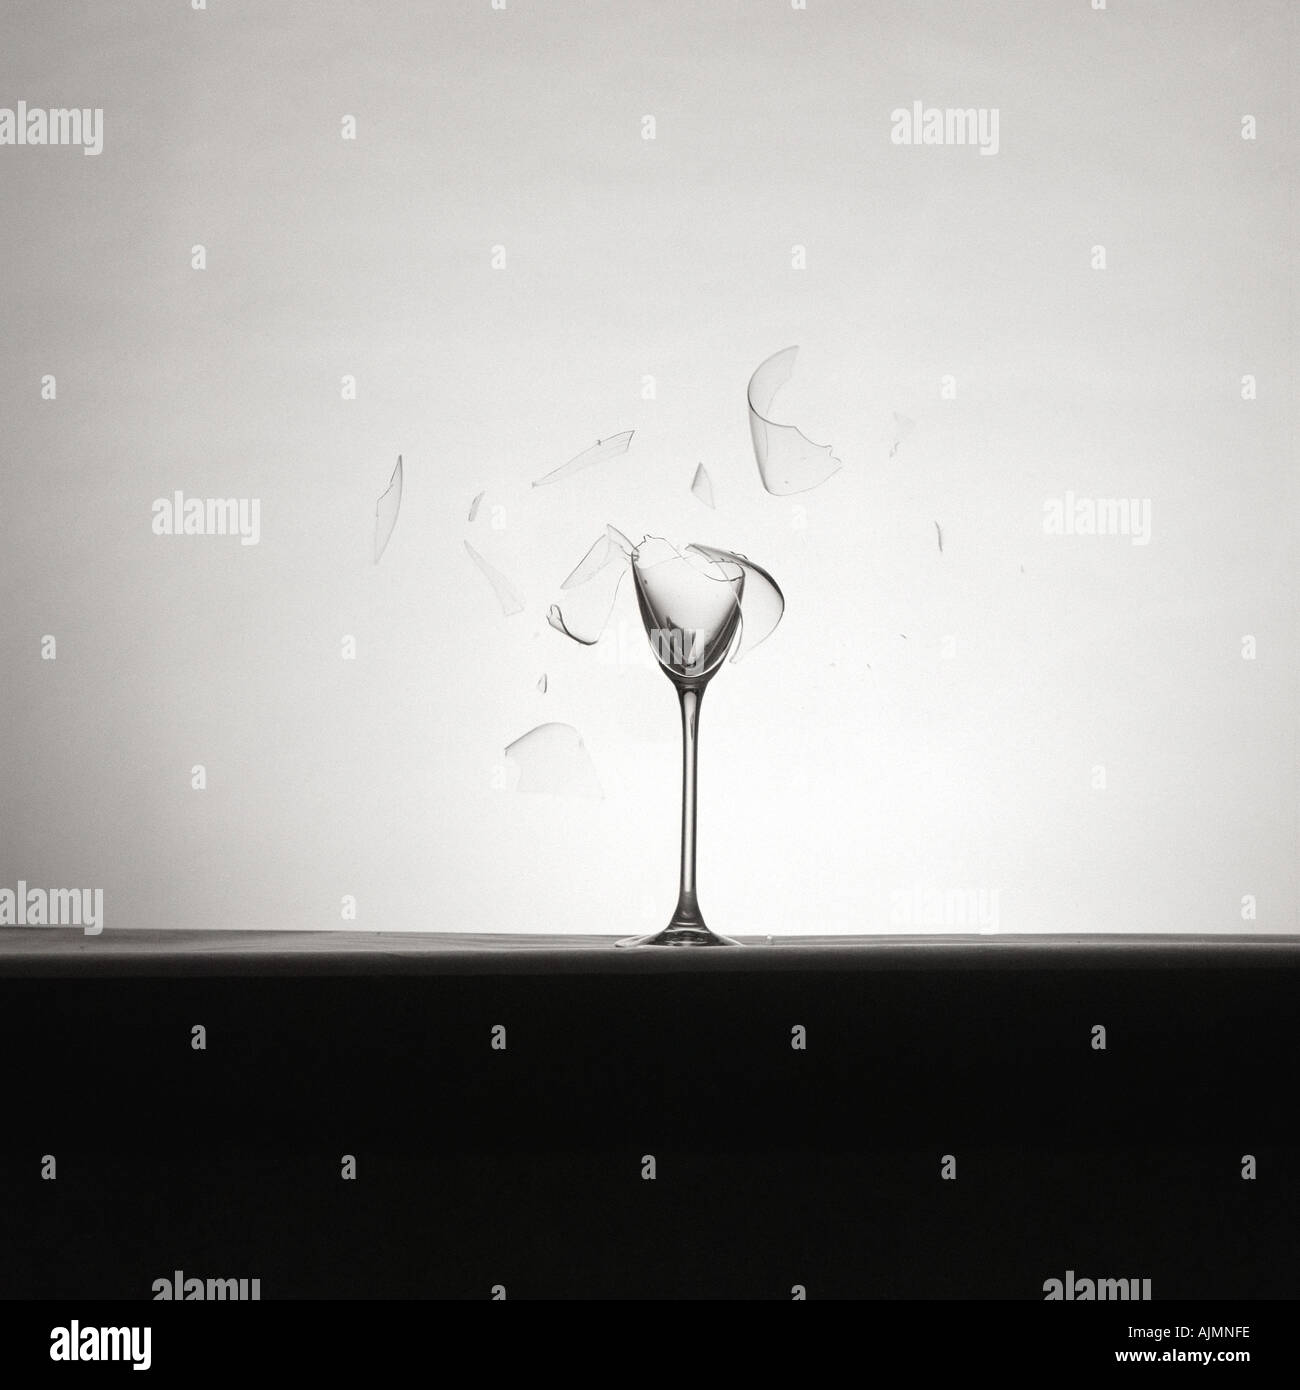 Shattered wine glass - Stock Image